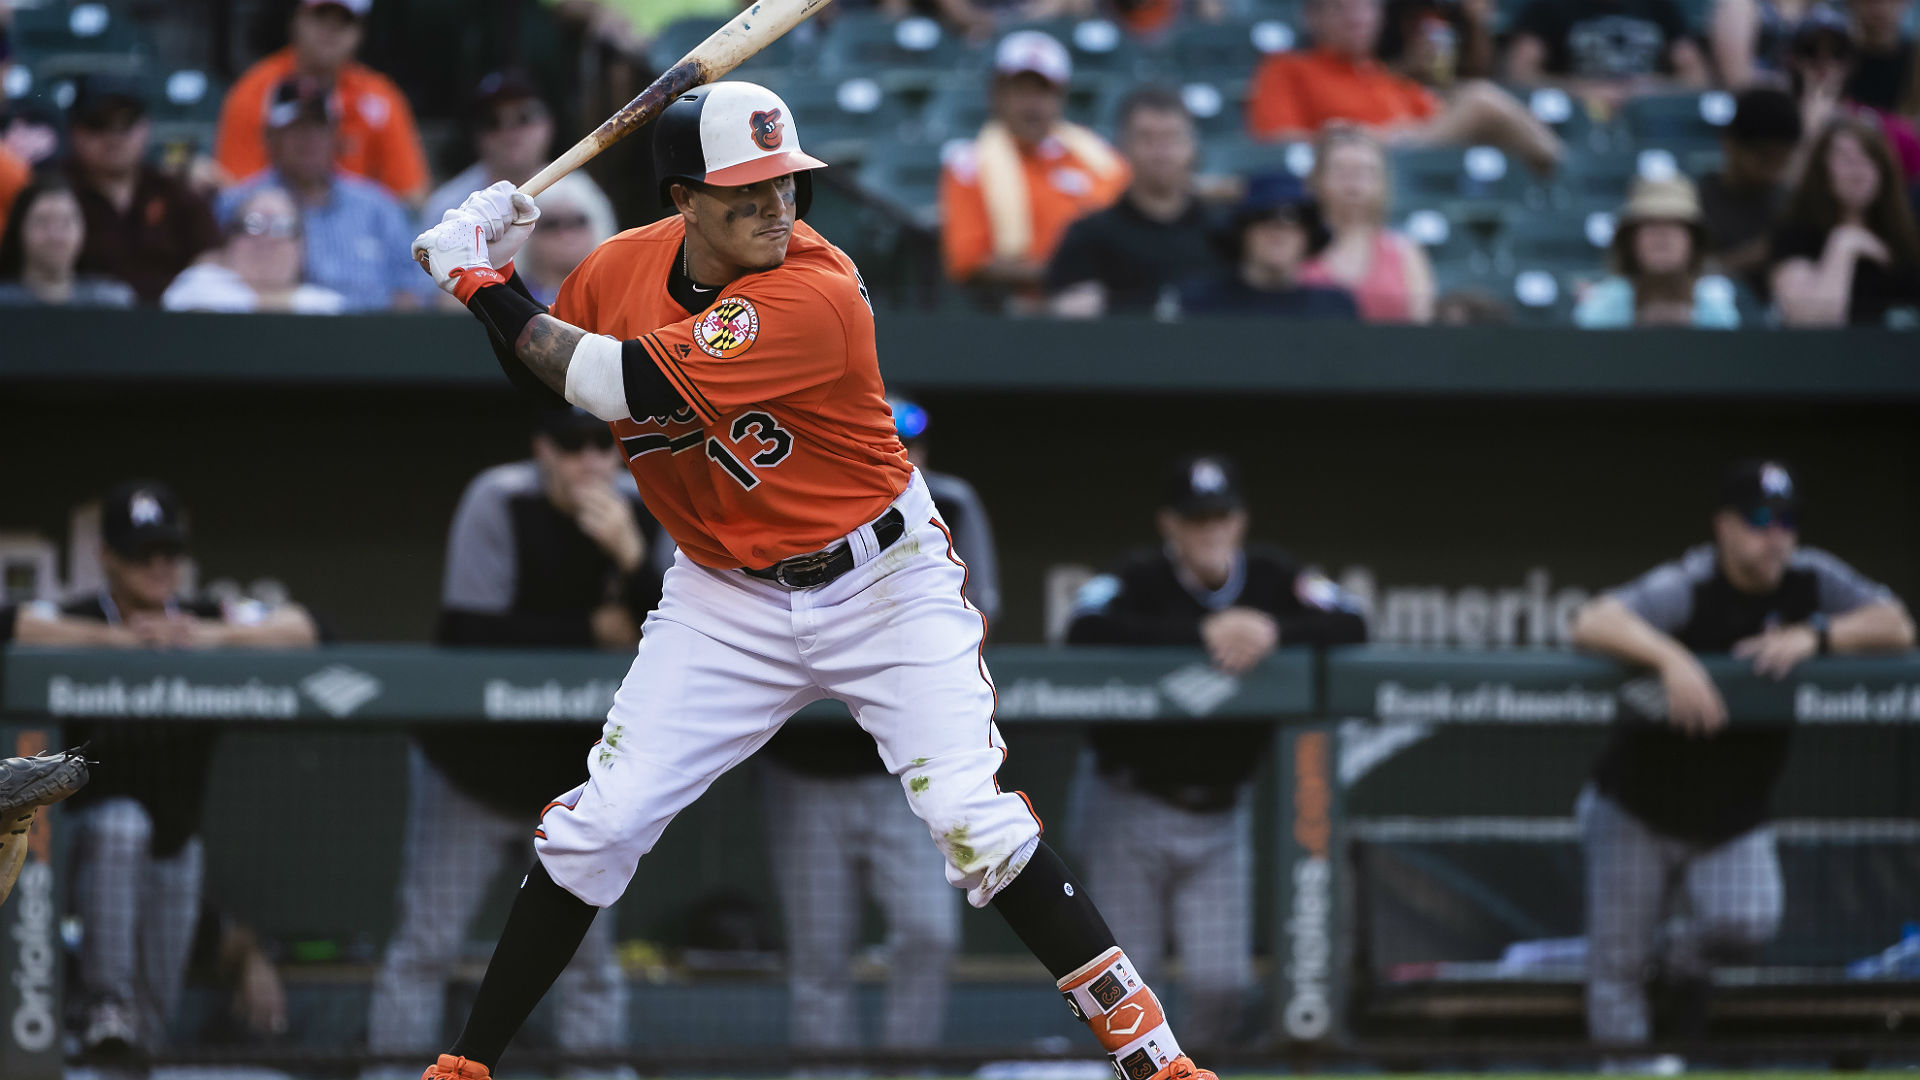 Manny Machado Voted Starting Shortstop For American League All-Stars